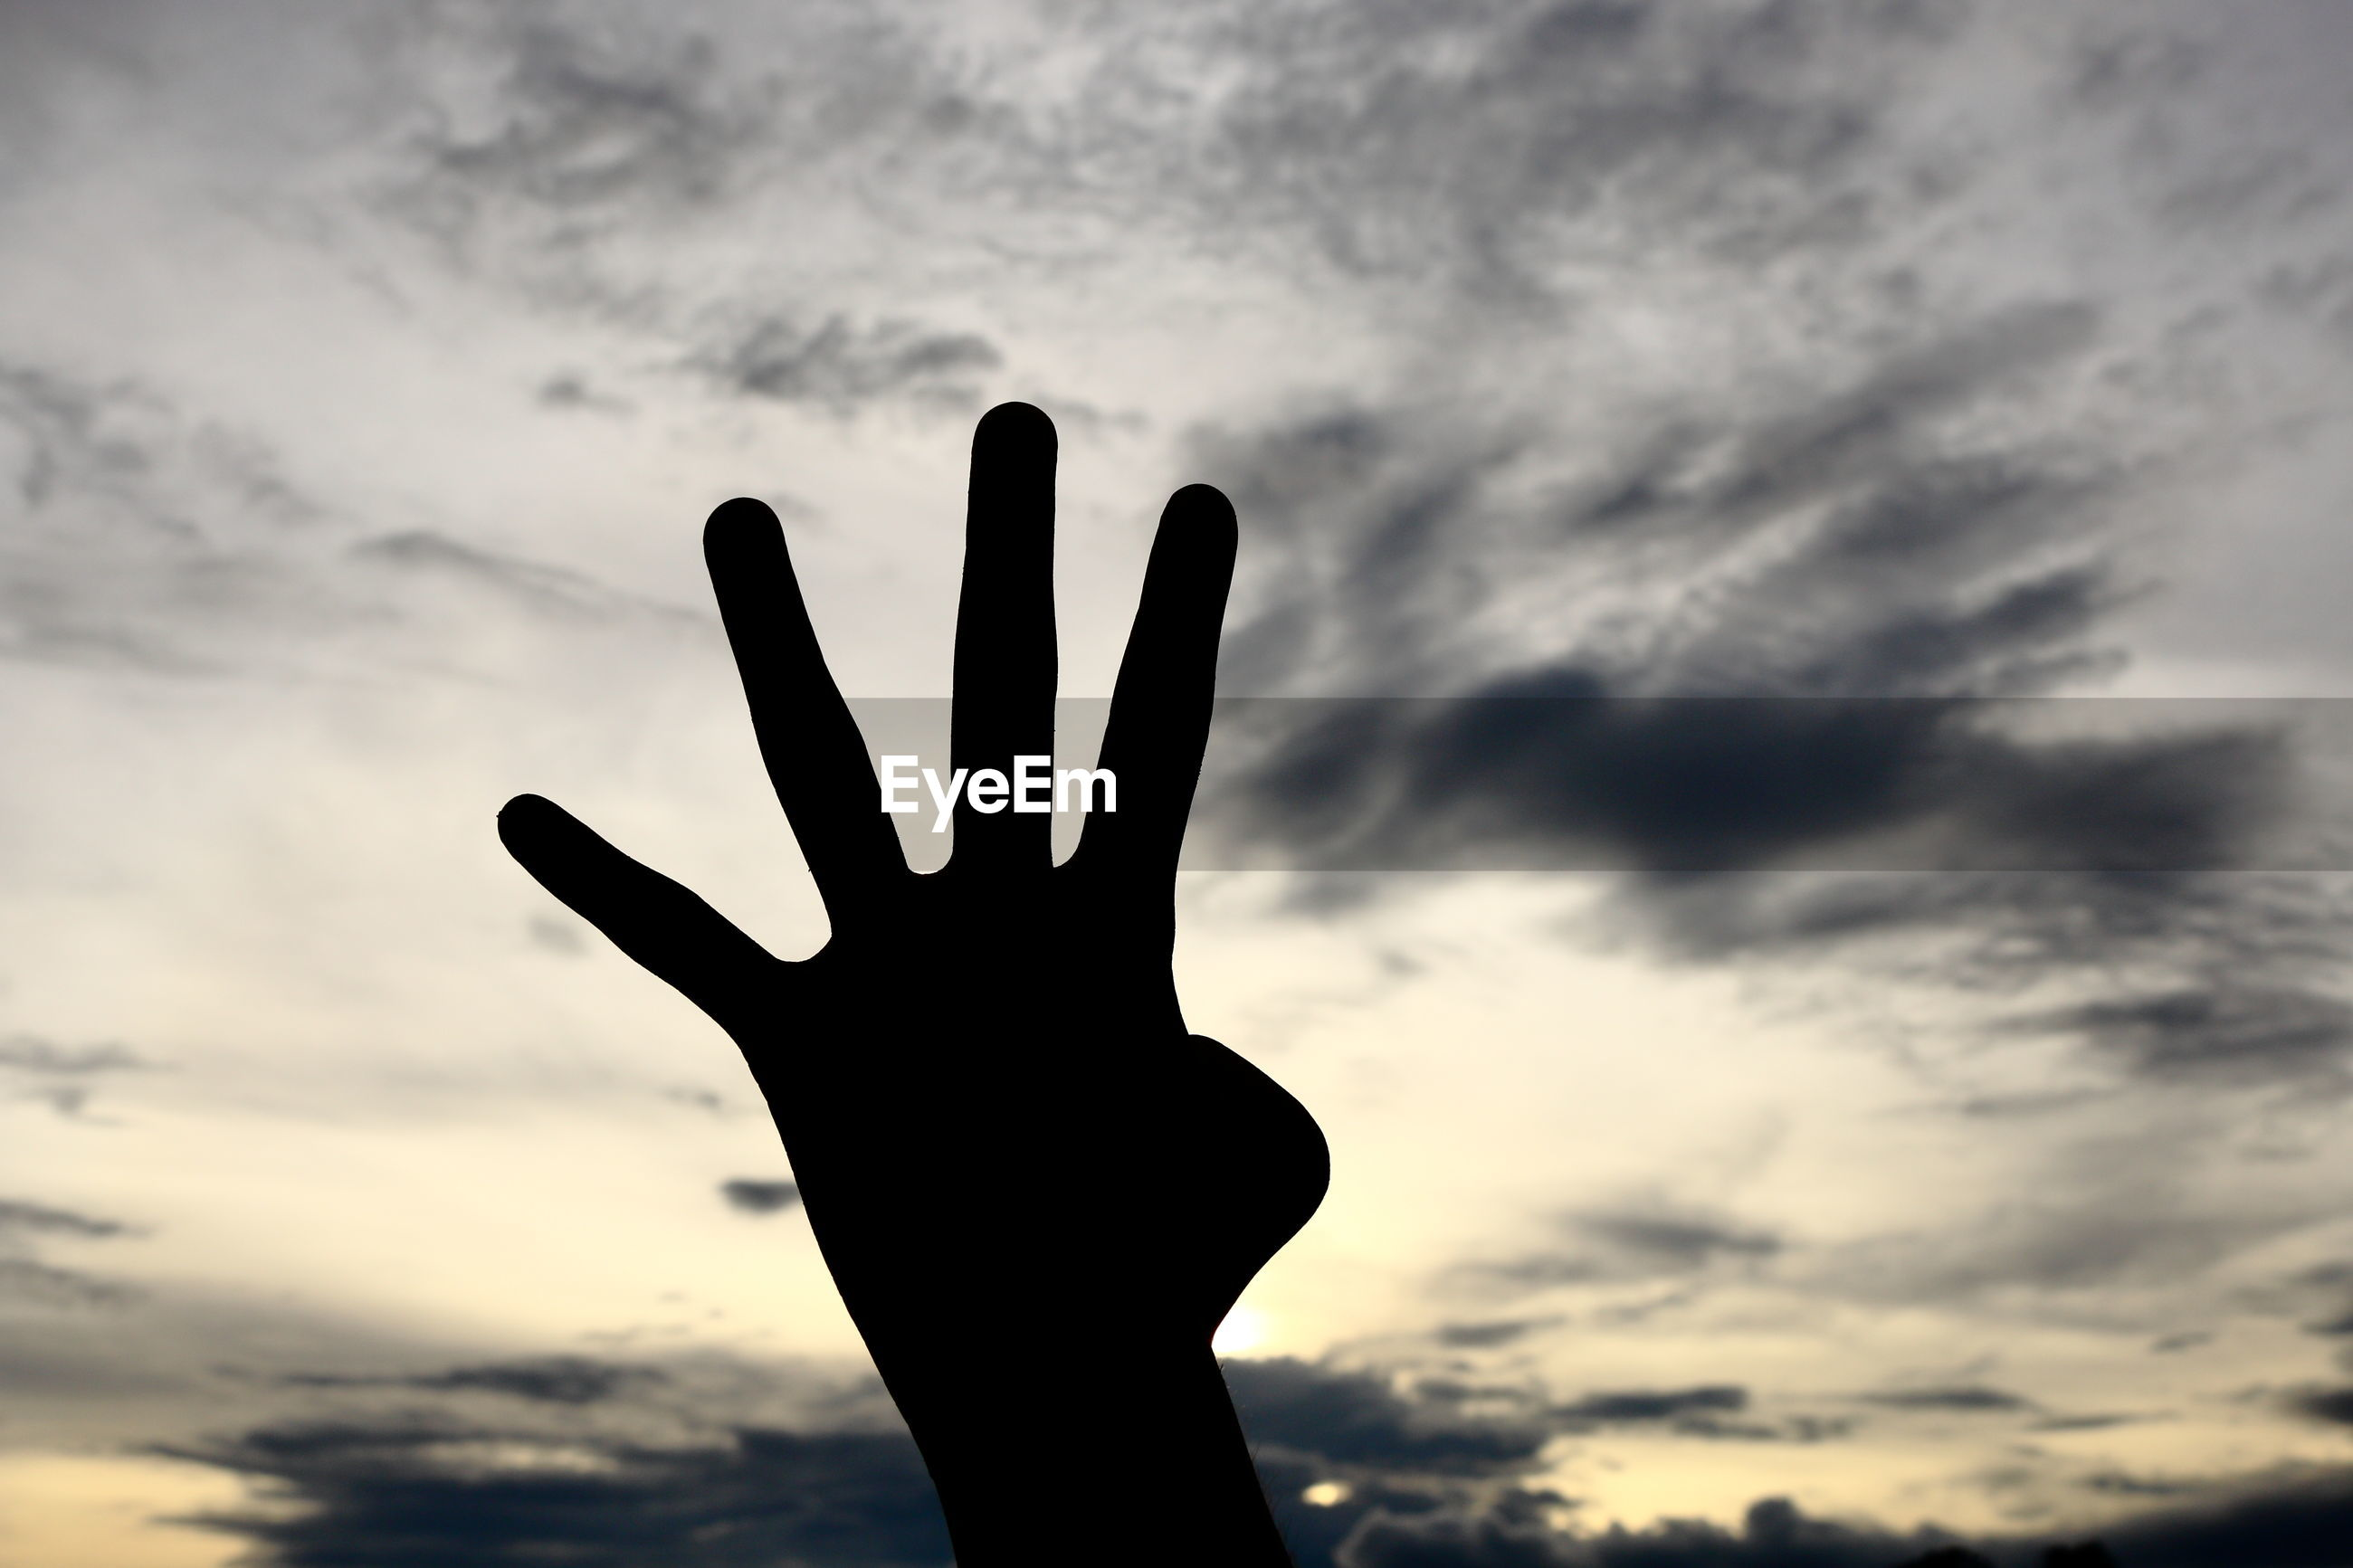 SILHOUETTE HAND AGAINST SKY